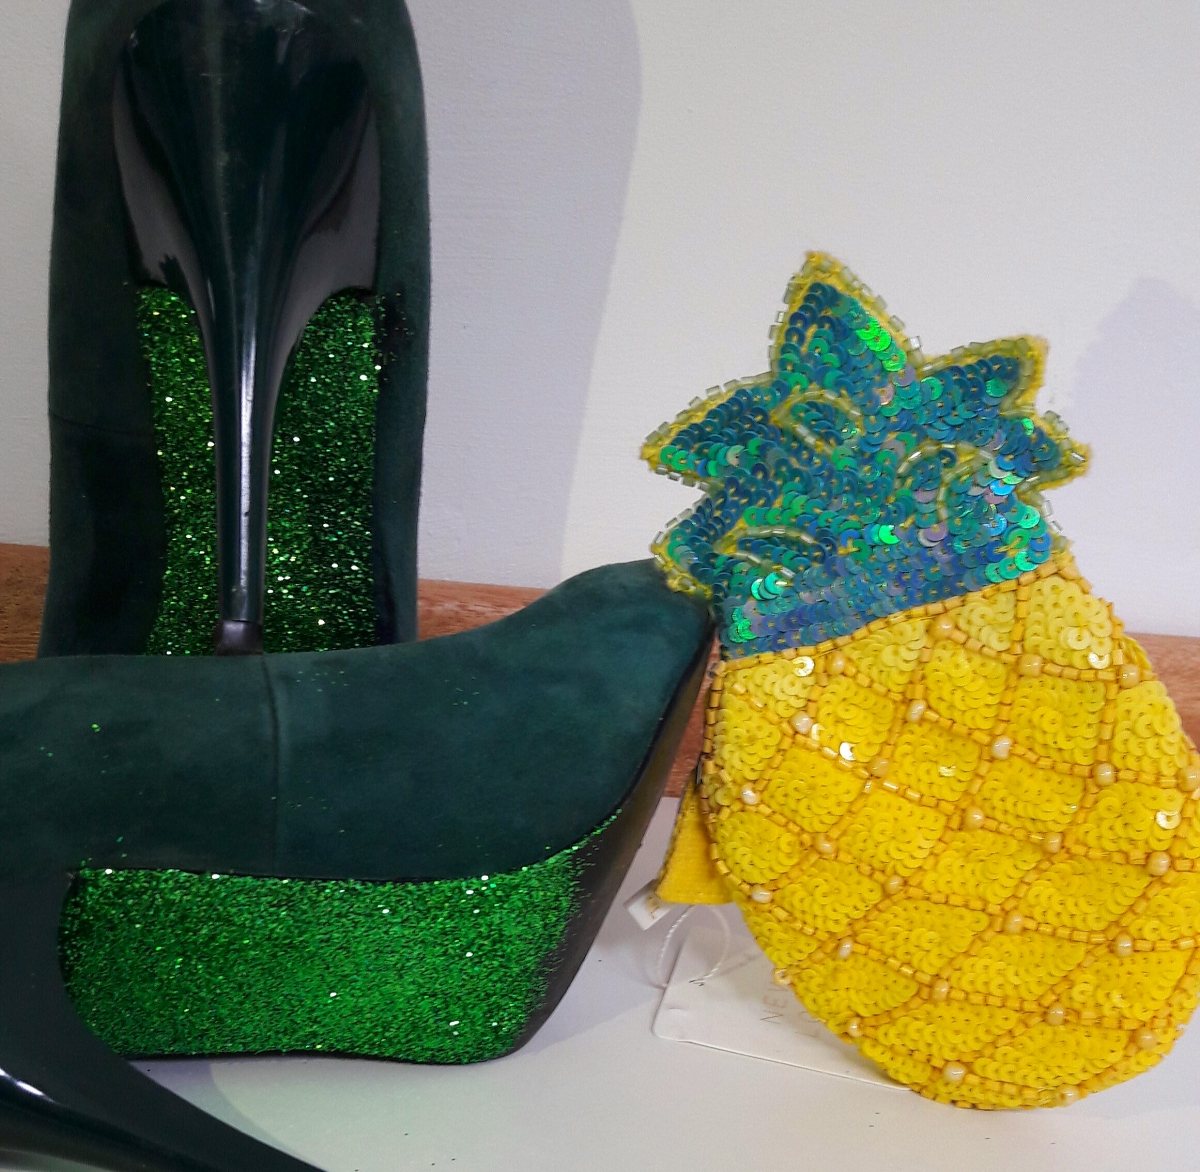 DIY Glittery Soled Shoes